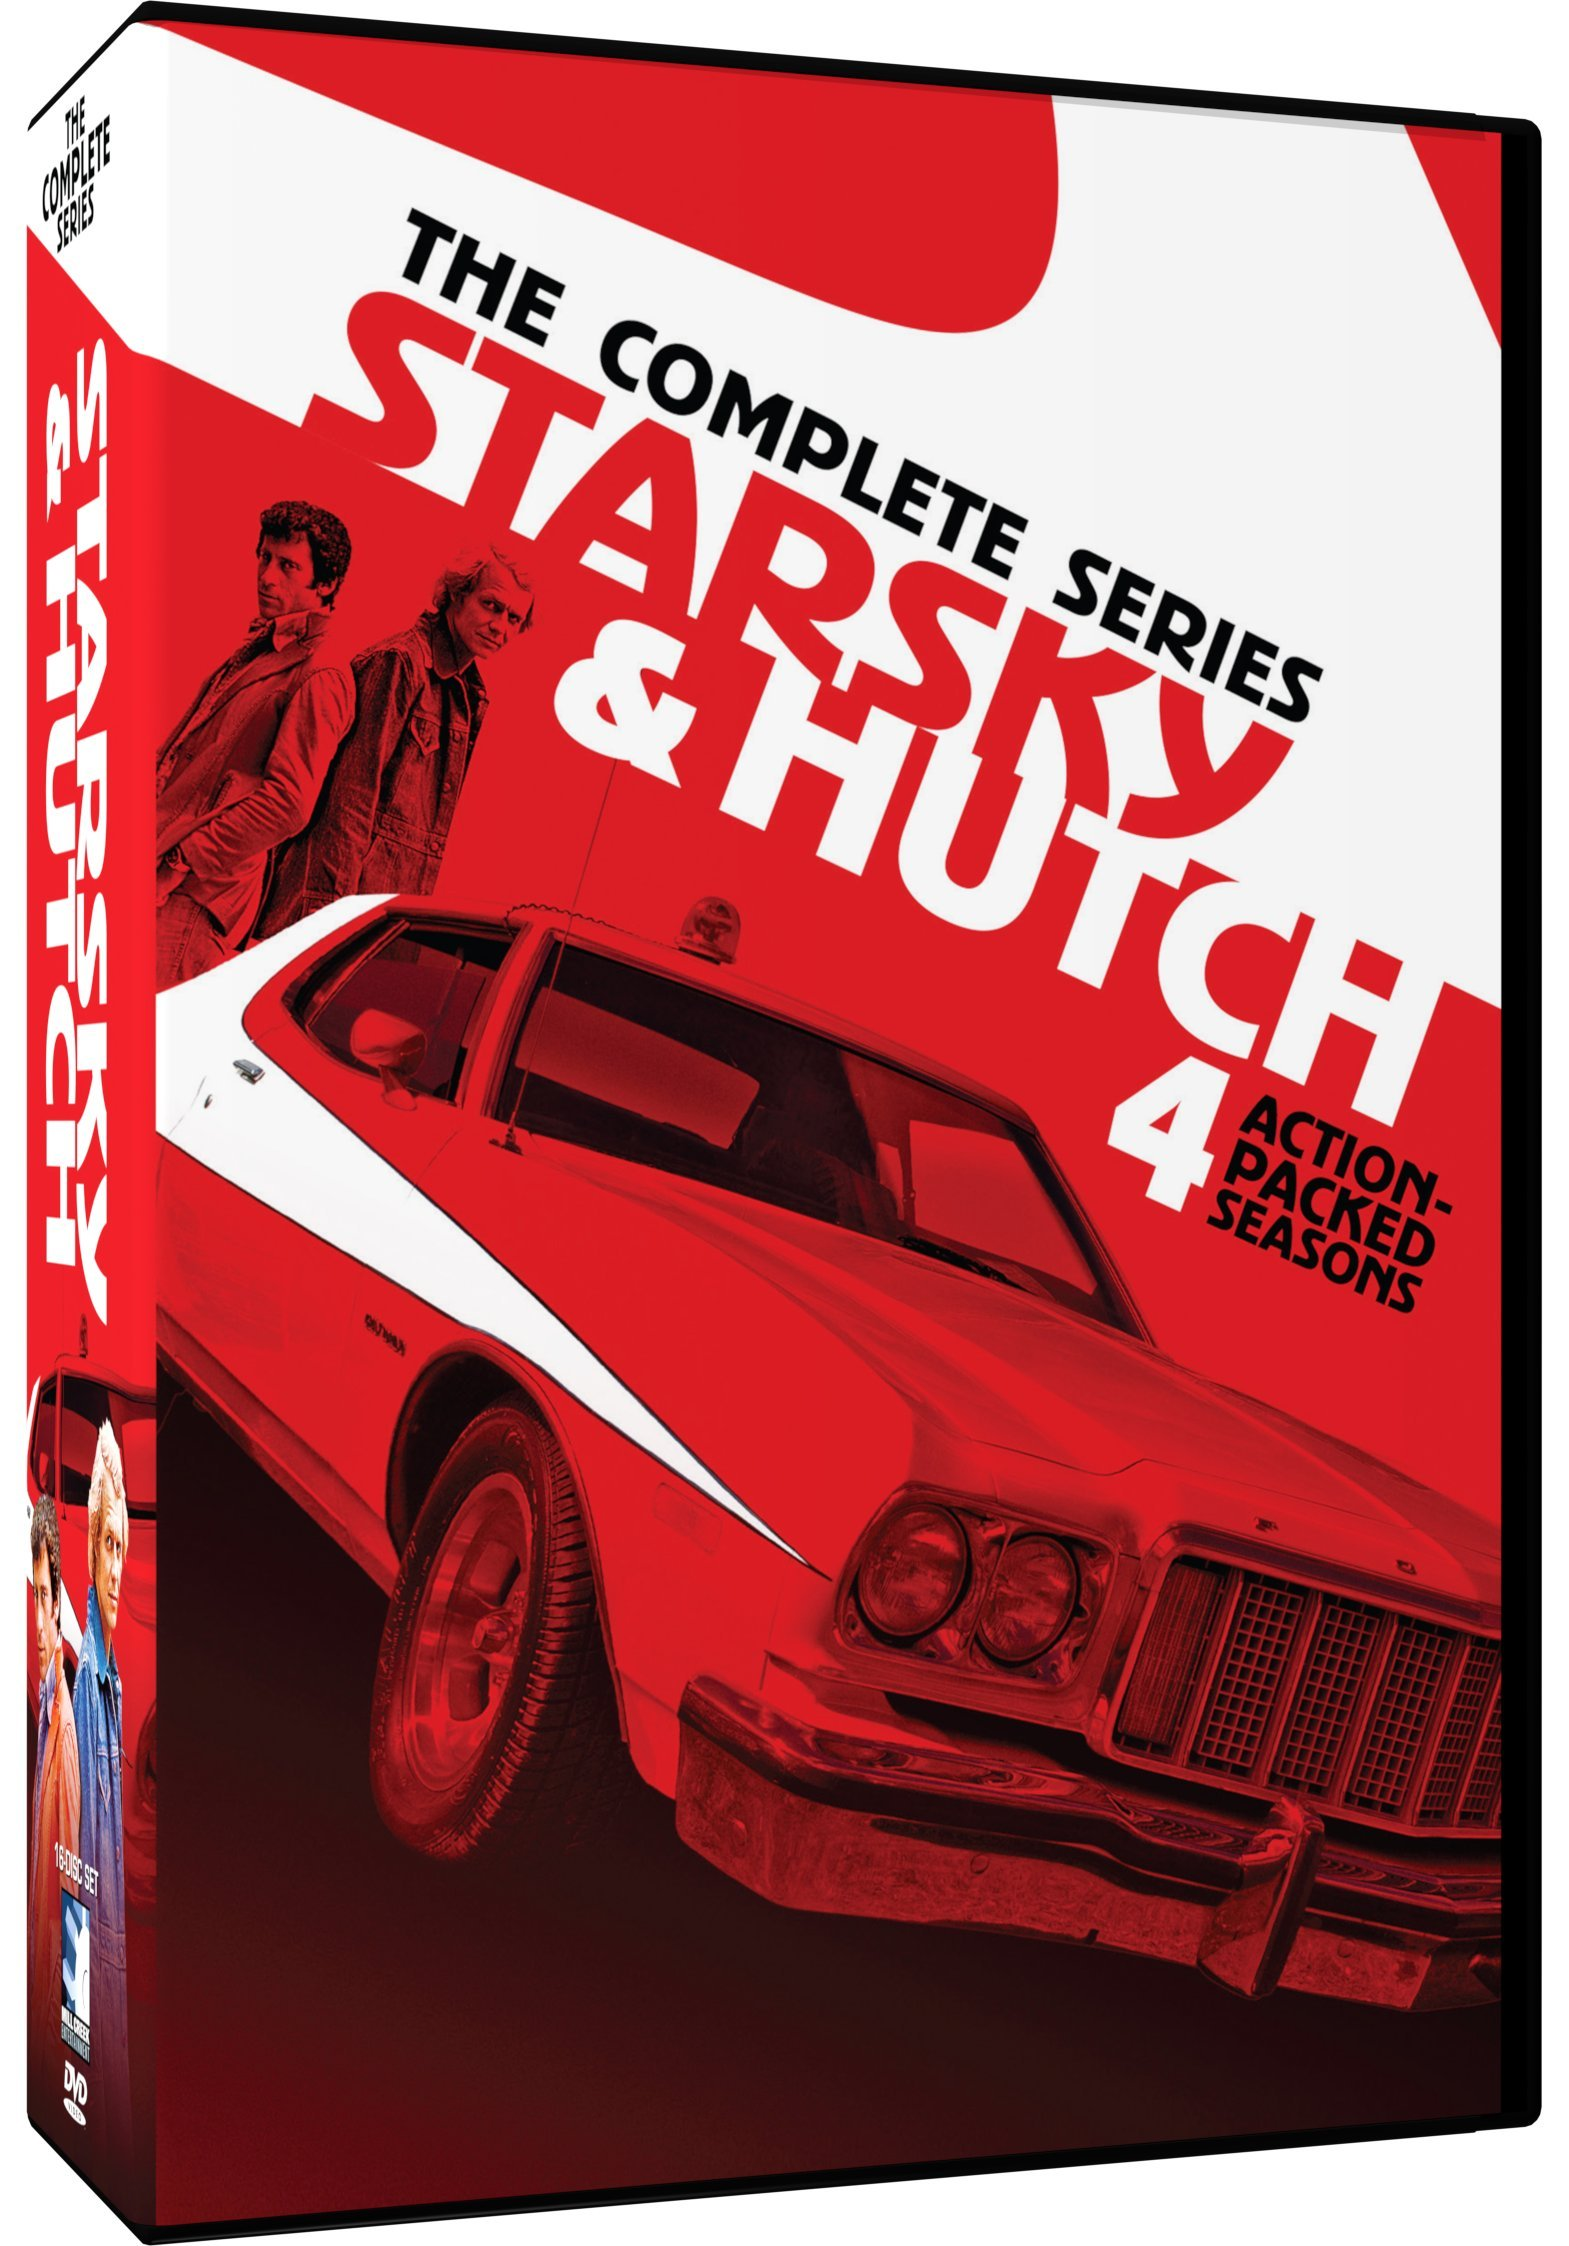 DVD : Starsky & Hutch: The Complete Series (Boxed Set, 16 Disc)